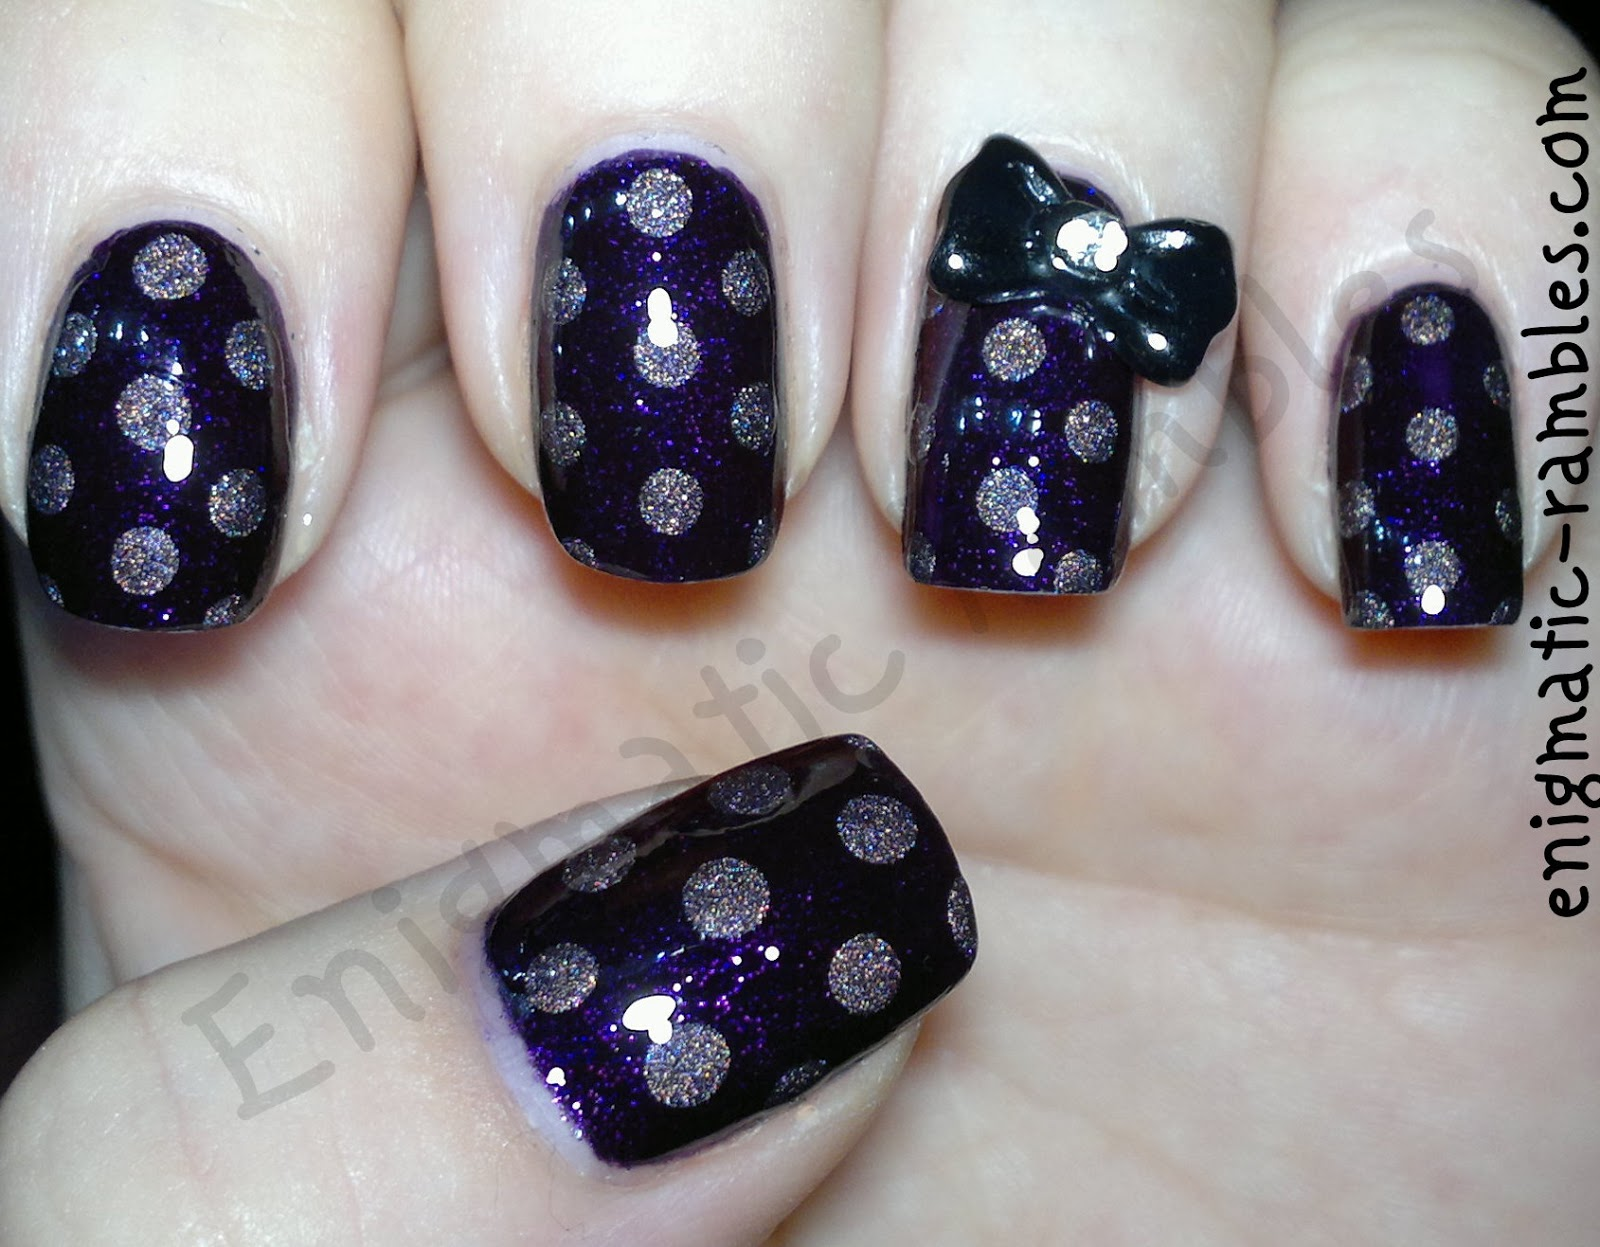 nails-nail-art-dotticure-dots-dot-dotting-tool-inc-bow-street-a-england-sleeping-palace-3d